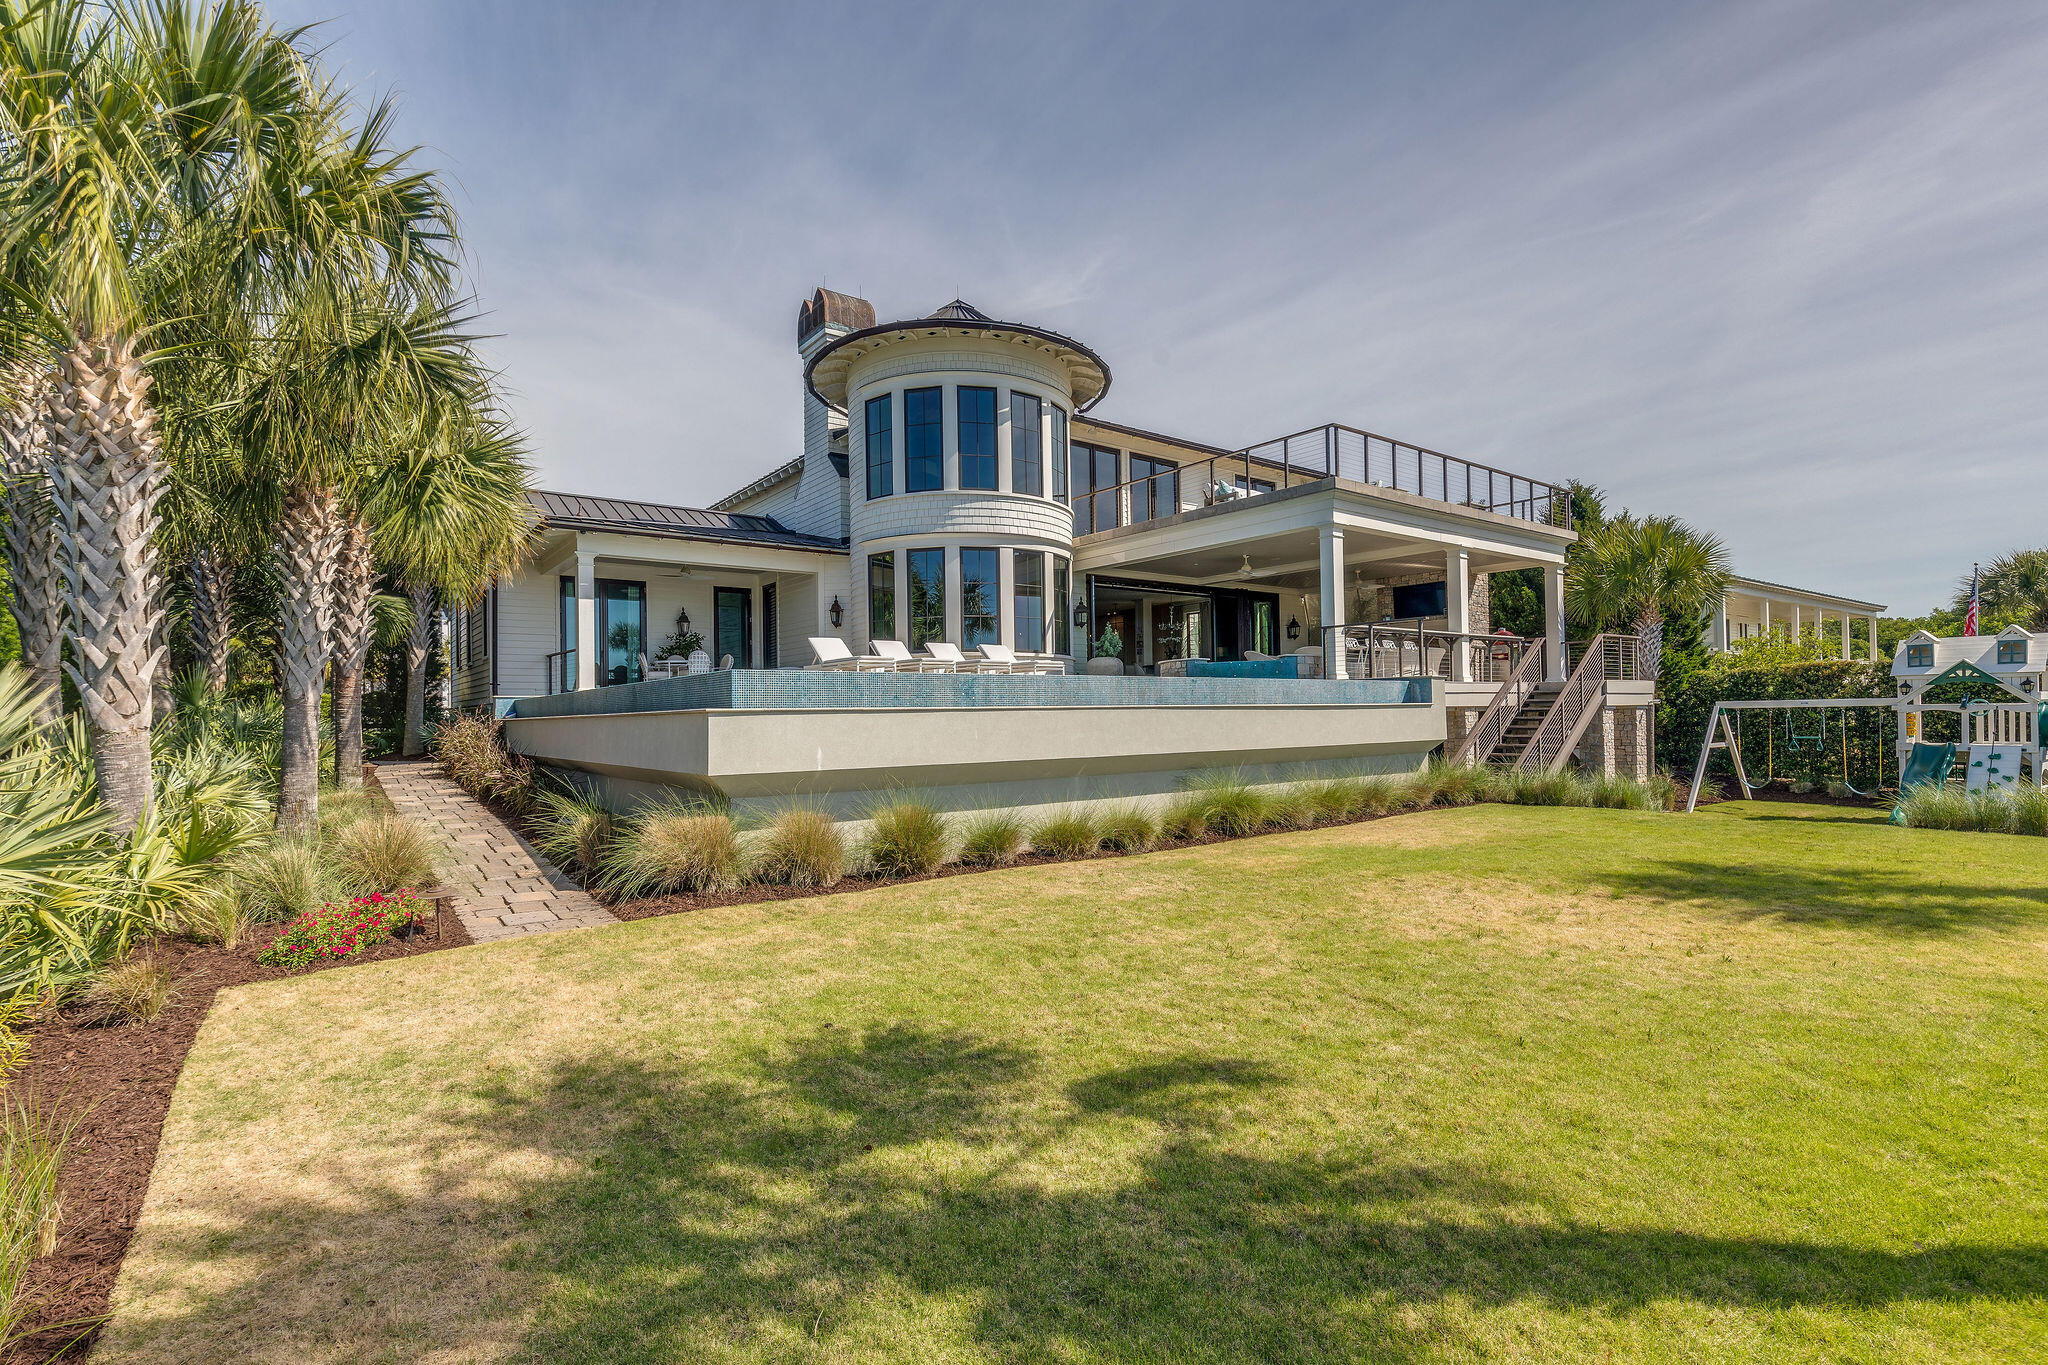 Sullivans Island Homes For Sale - 1901 Thee, Sullivans Island, SC - 41